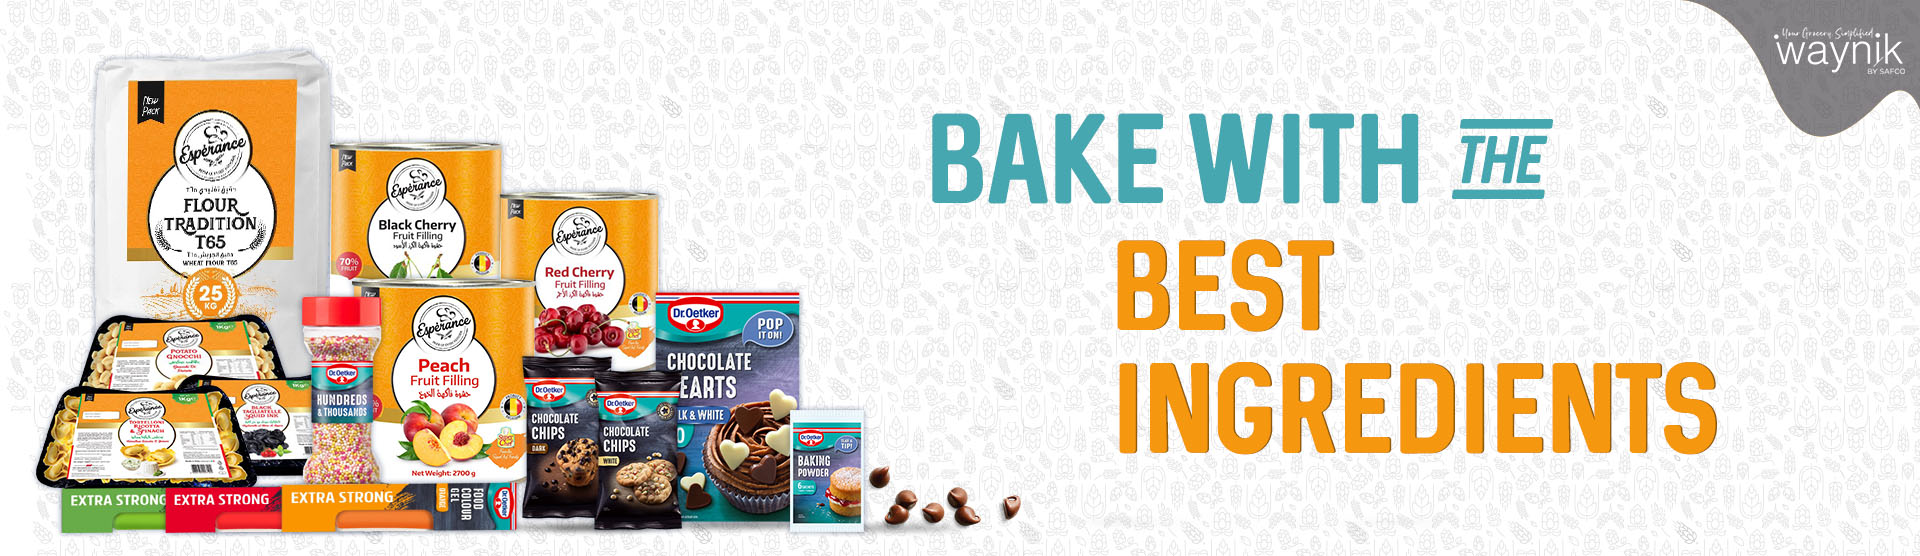 BAKE WITH THE BEST INGREDIENTS